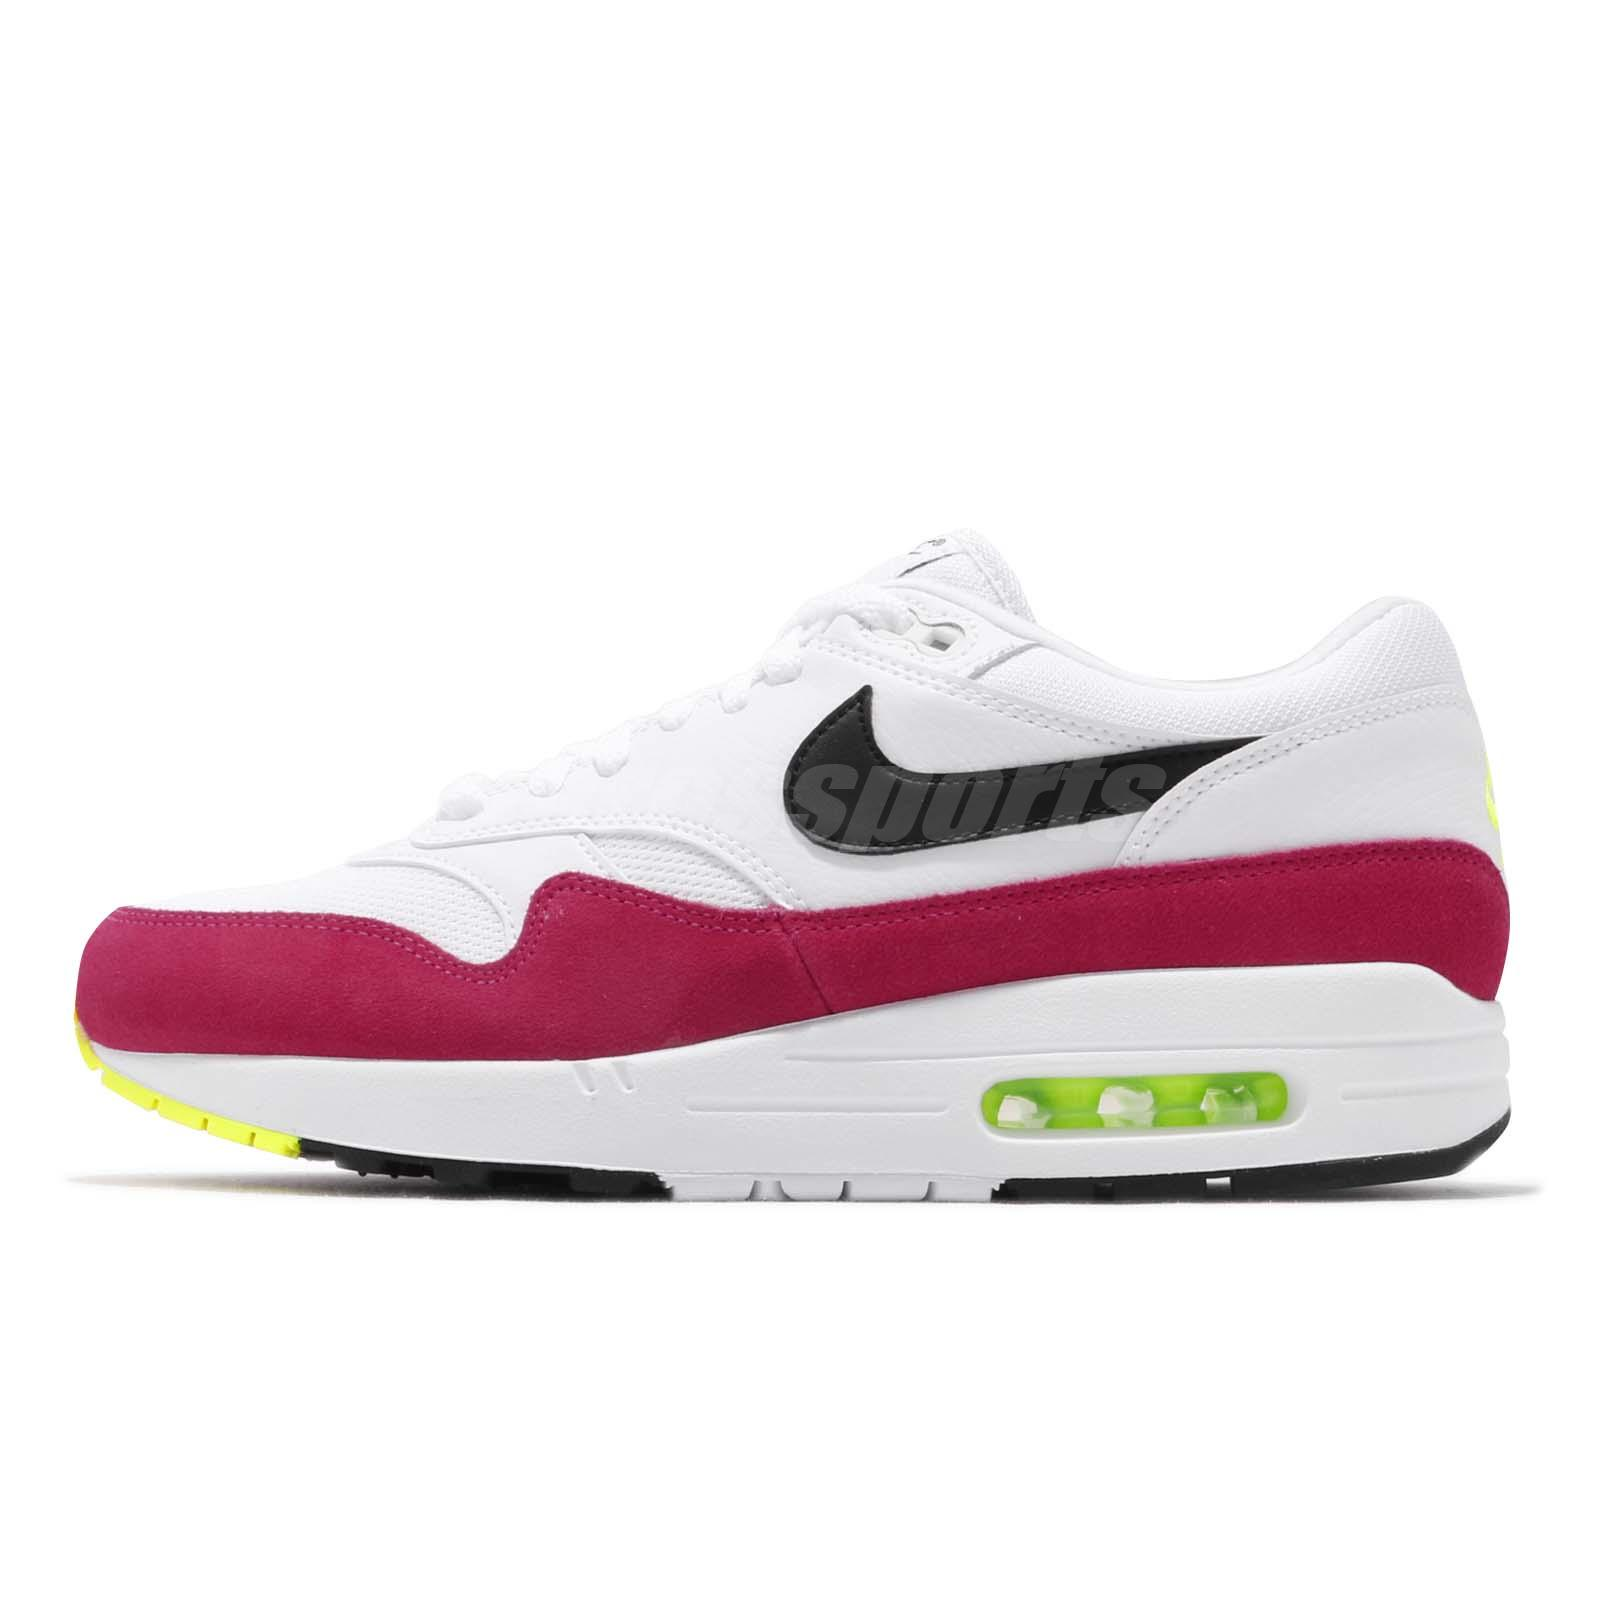 new high the latest large discount Nike Air Max 1 White Black Volt Mens Running Shoes NSW Day 326 ...